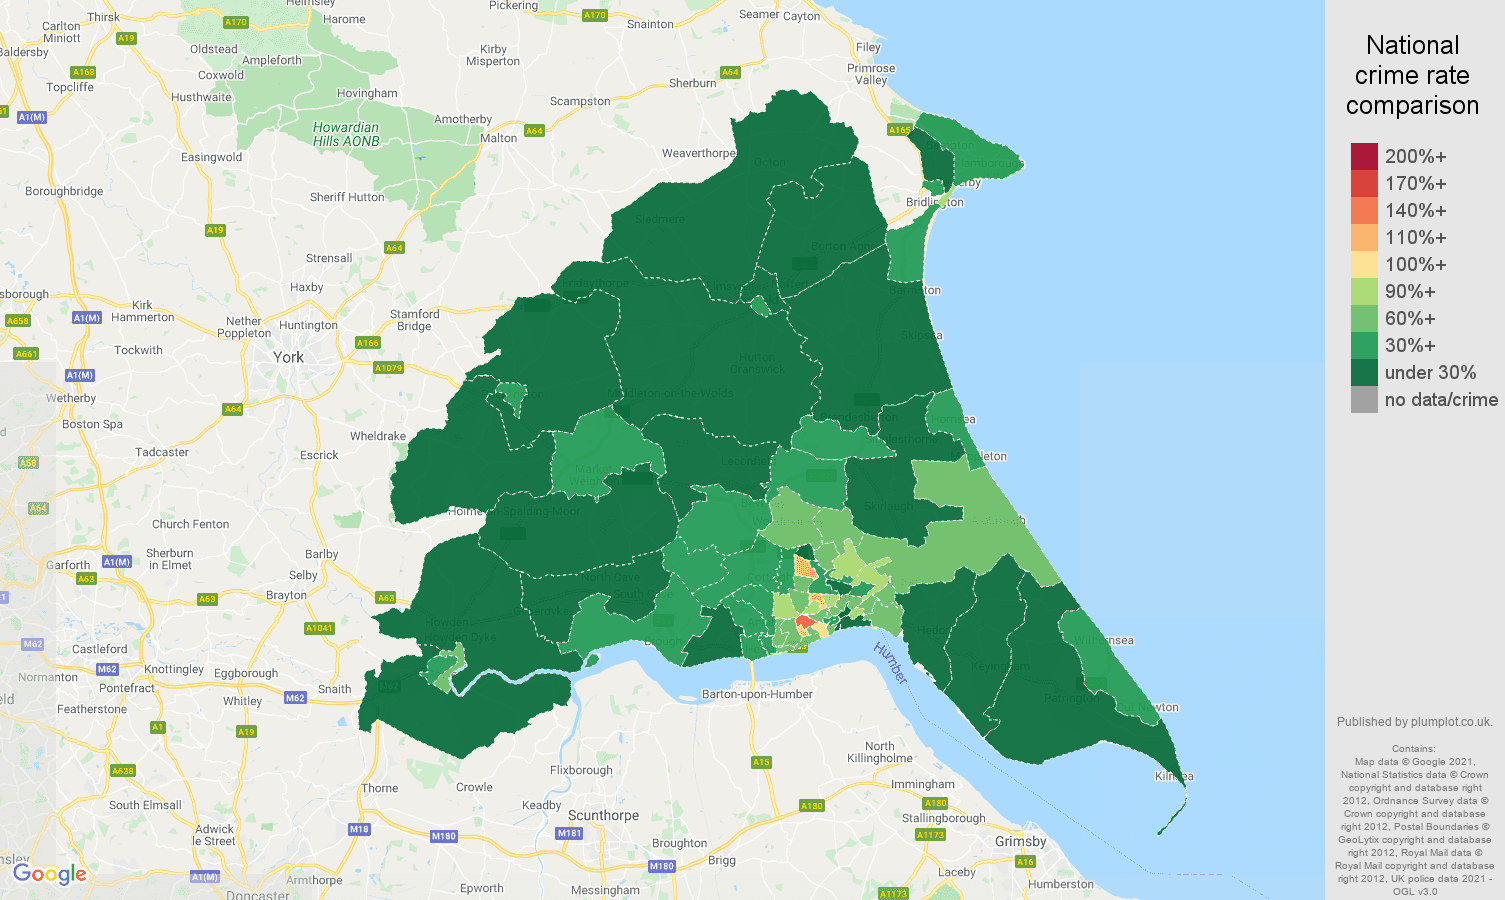 East Riding of Yorkshire antisocial behaviour crime rate comparison map